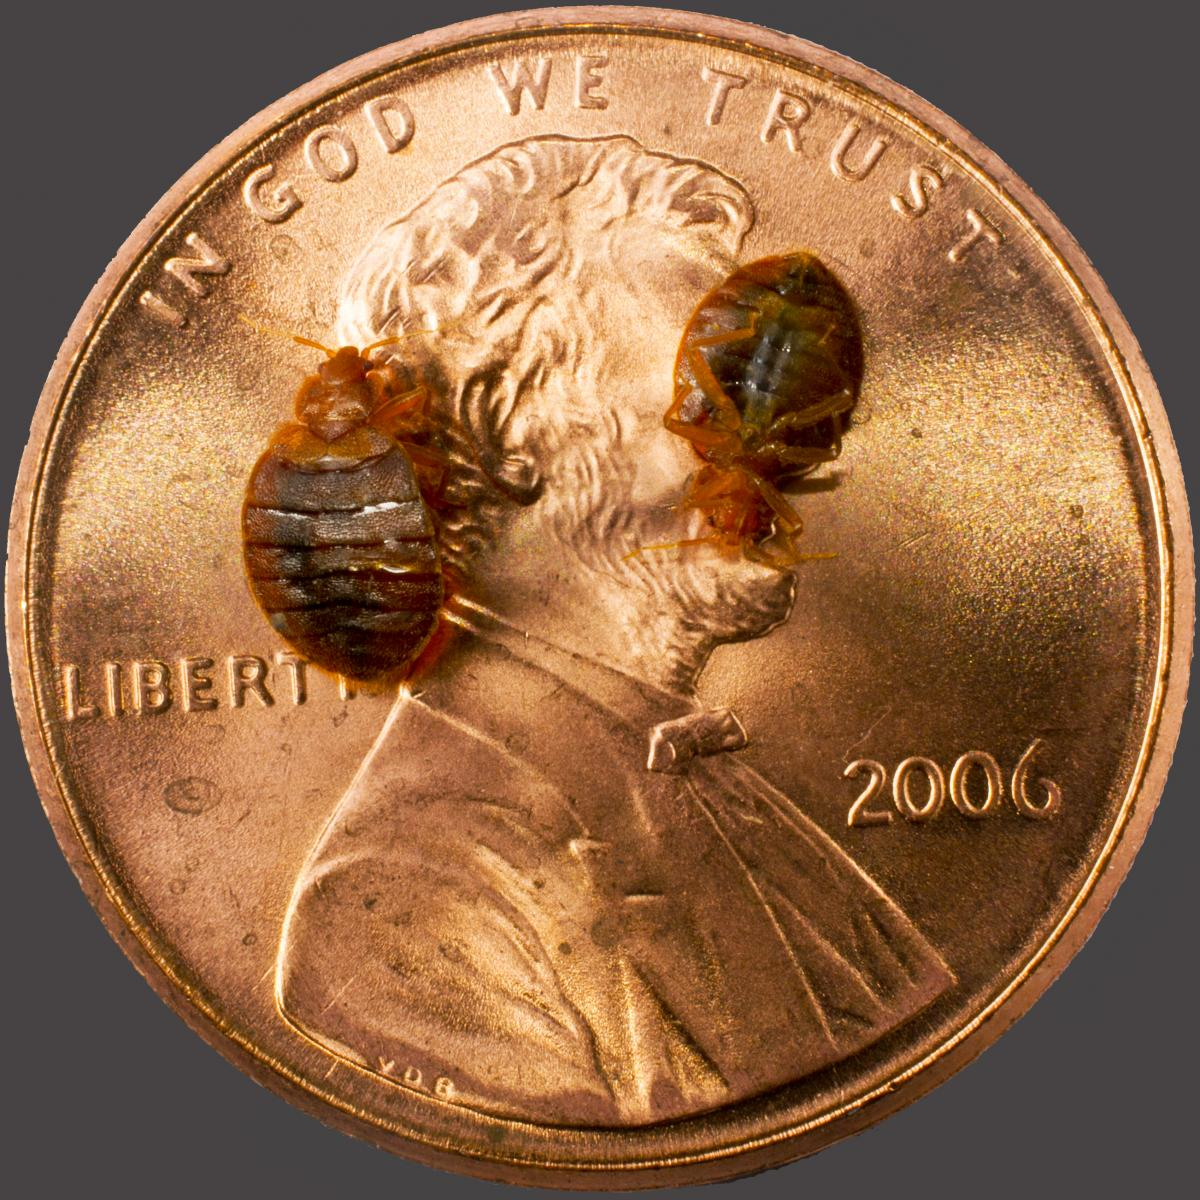 bed bugs to scale on penny